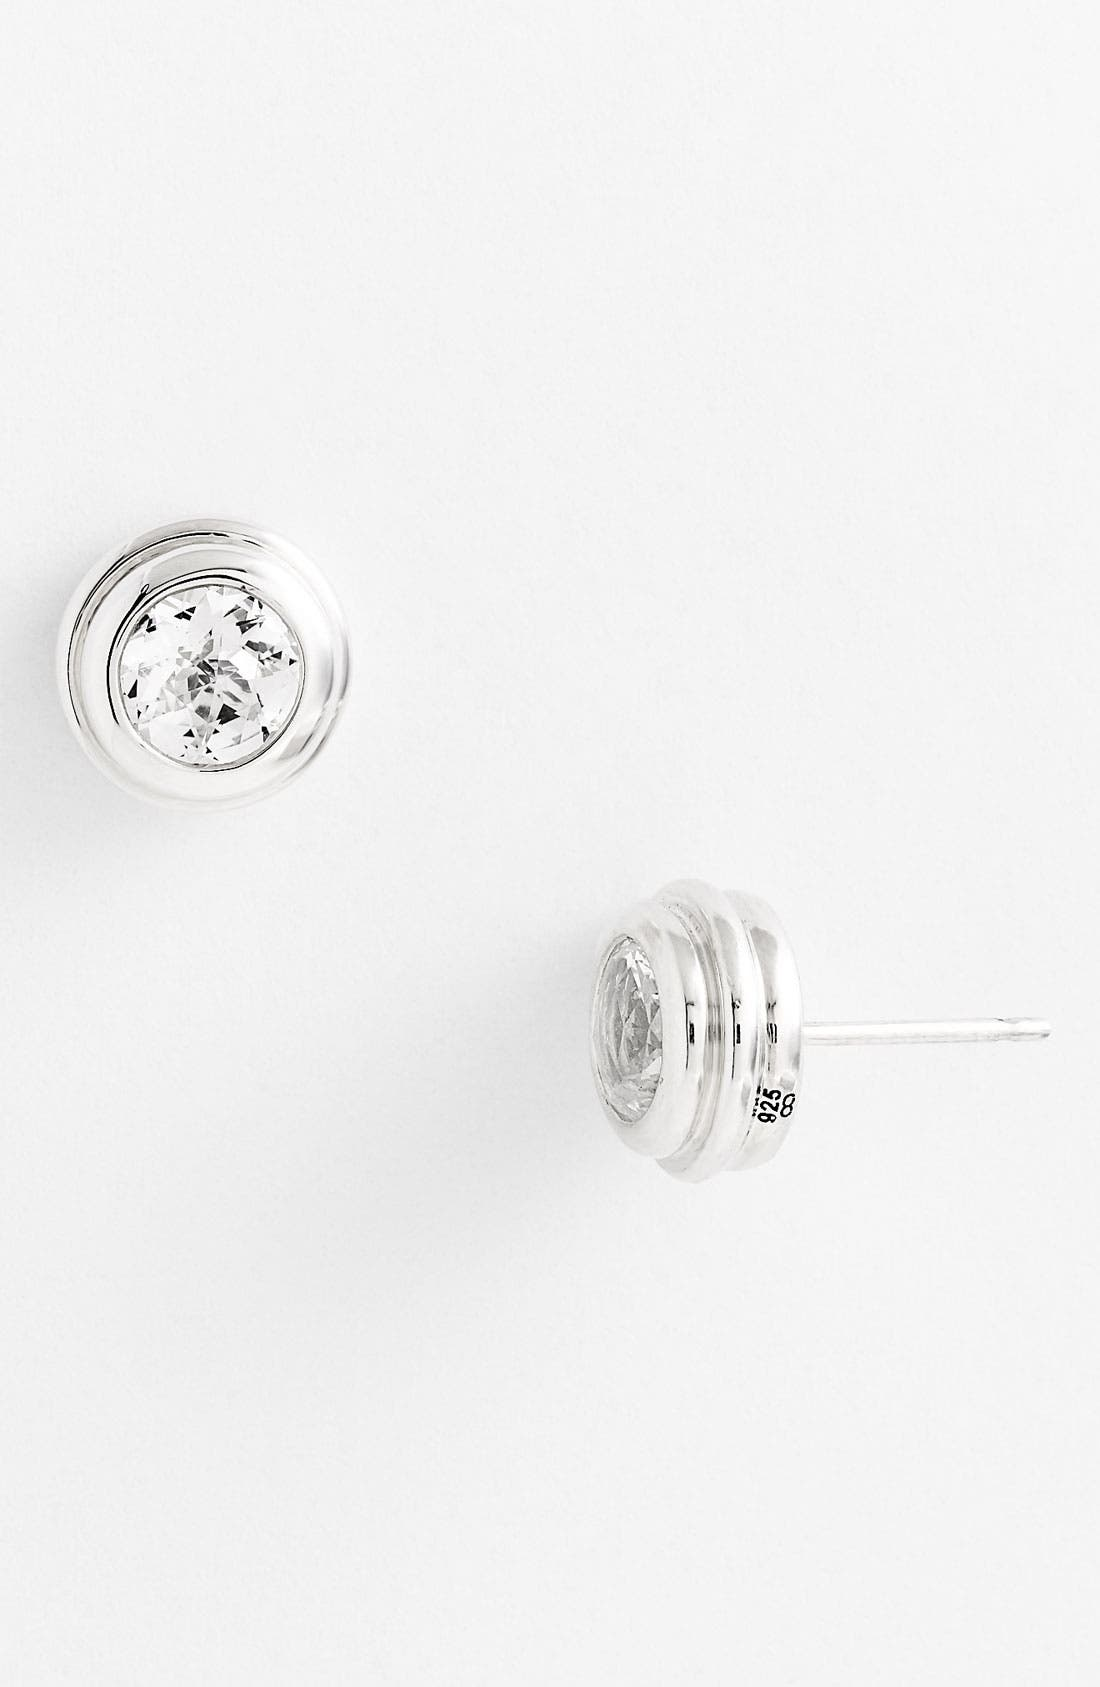 Main Image - John Hardy 'Bedeg' Round Stud Earrings